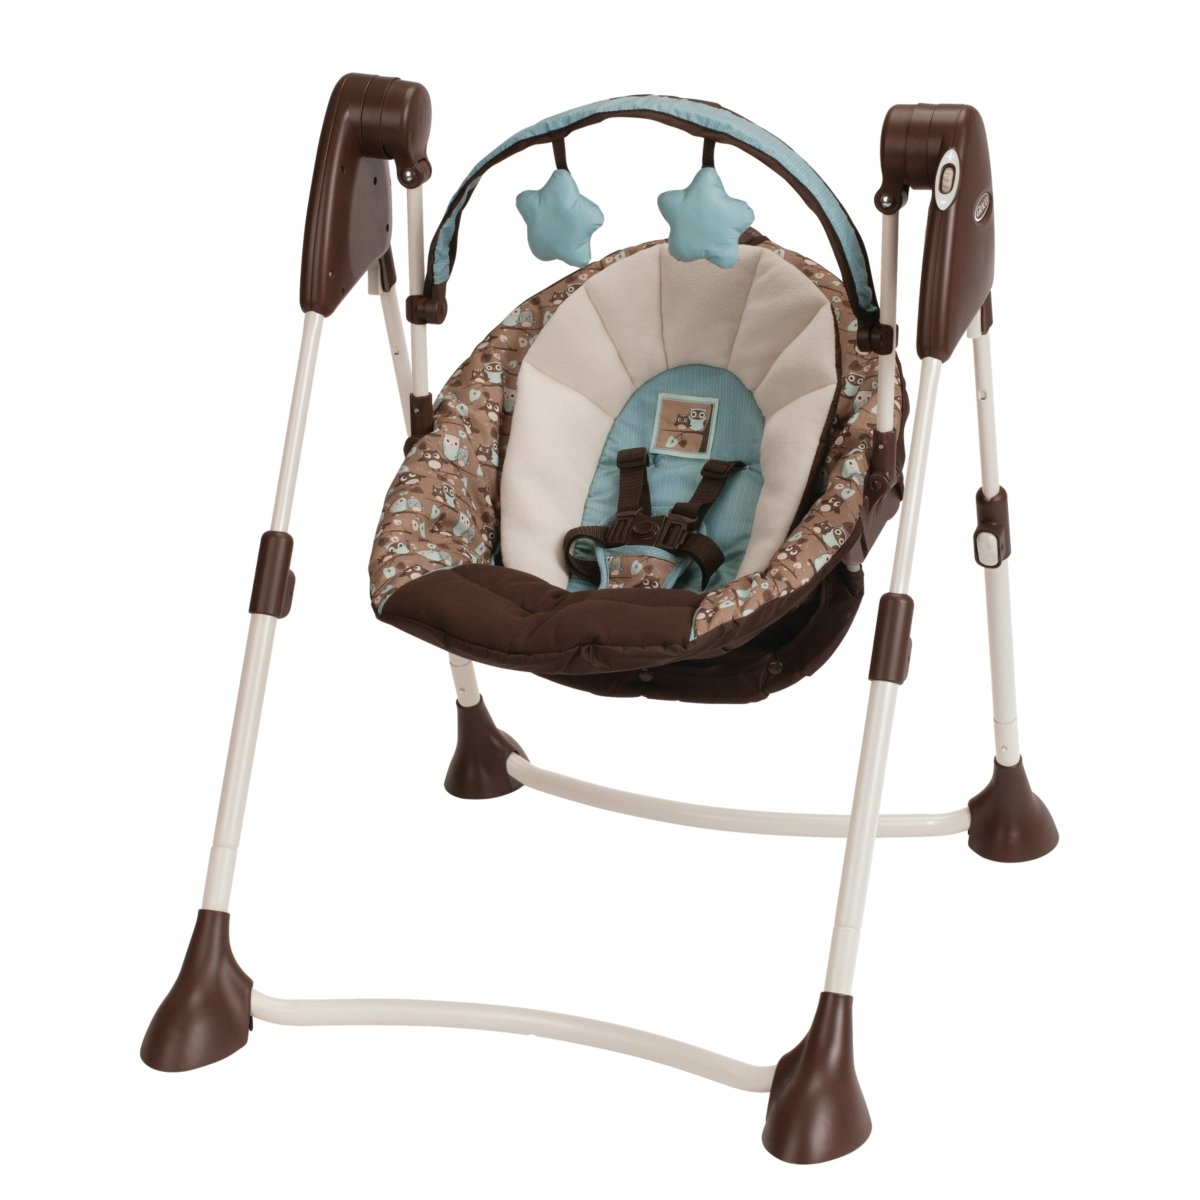 22460f13f23 Amazon.com   Graco Swing By Me Portable 2-in-1 Swing